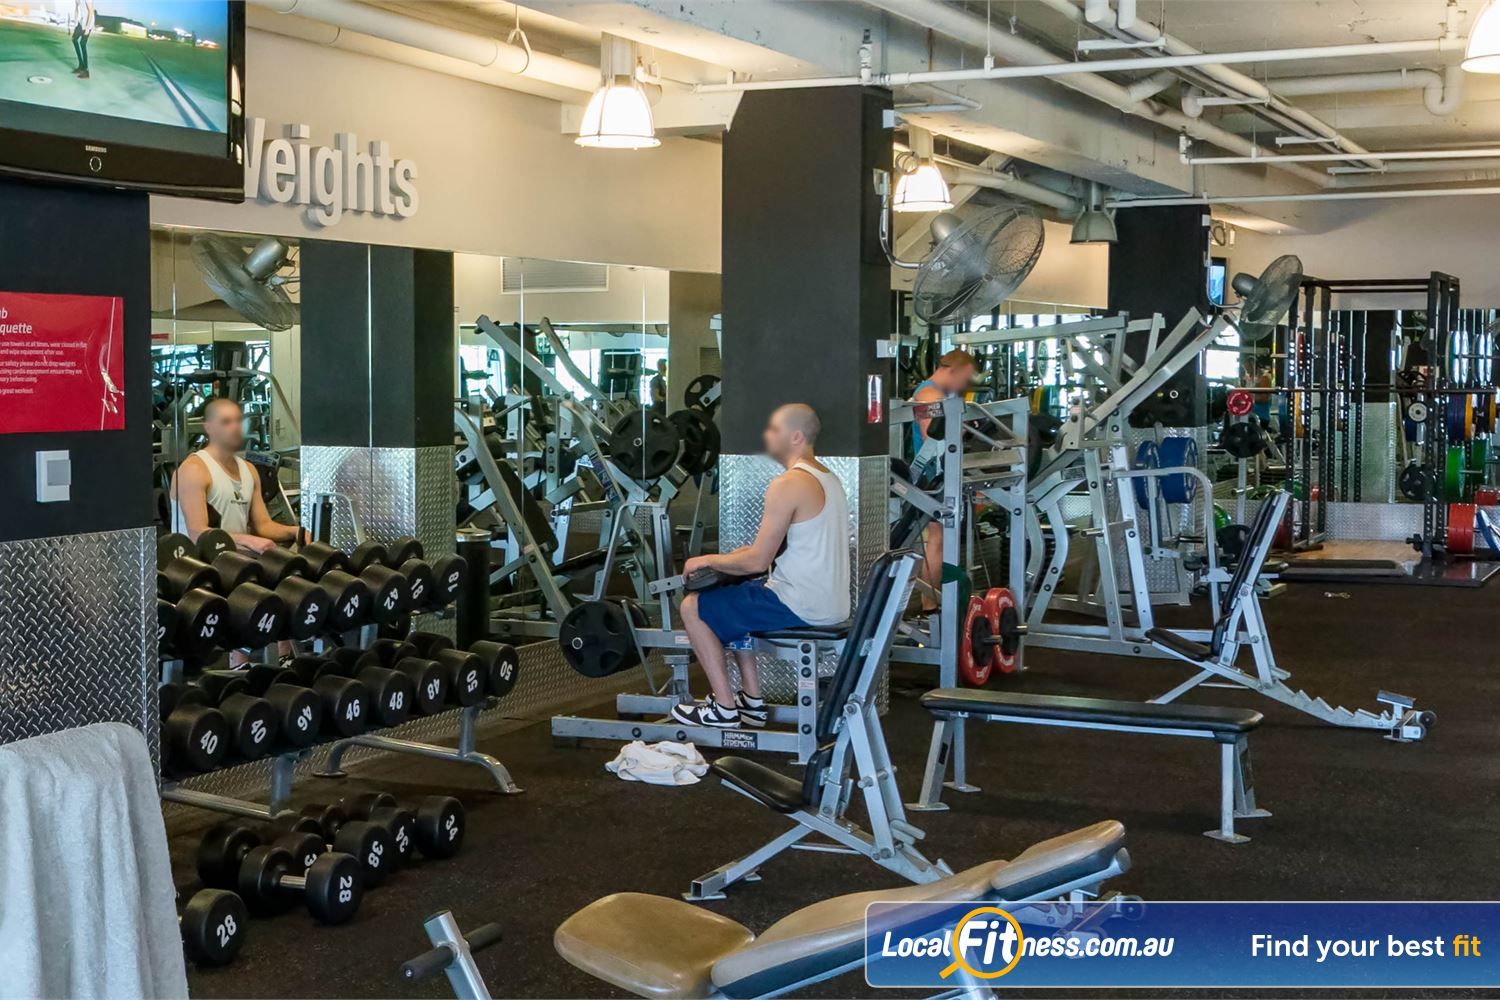 Fitness First Platinum Kings Cross Near Rushcutters Bay Dumbbells, barbells, a full range of adjustable benches and more.